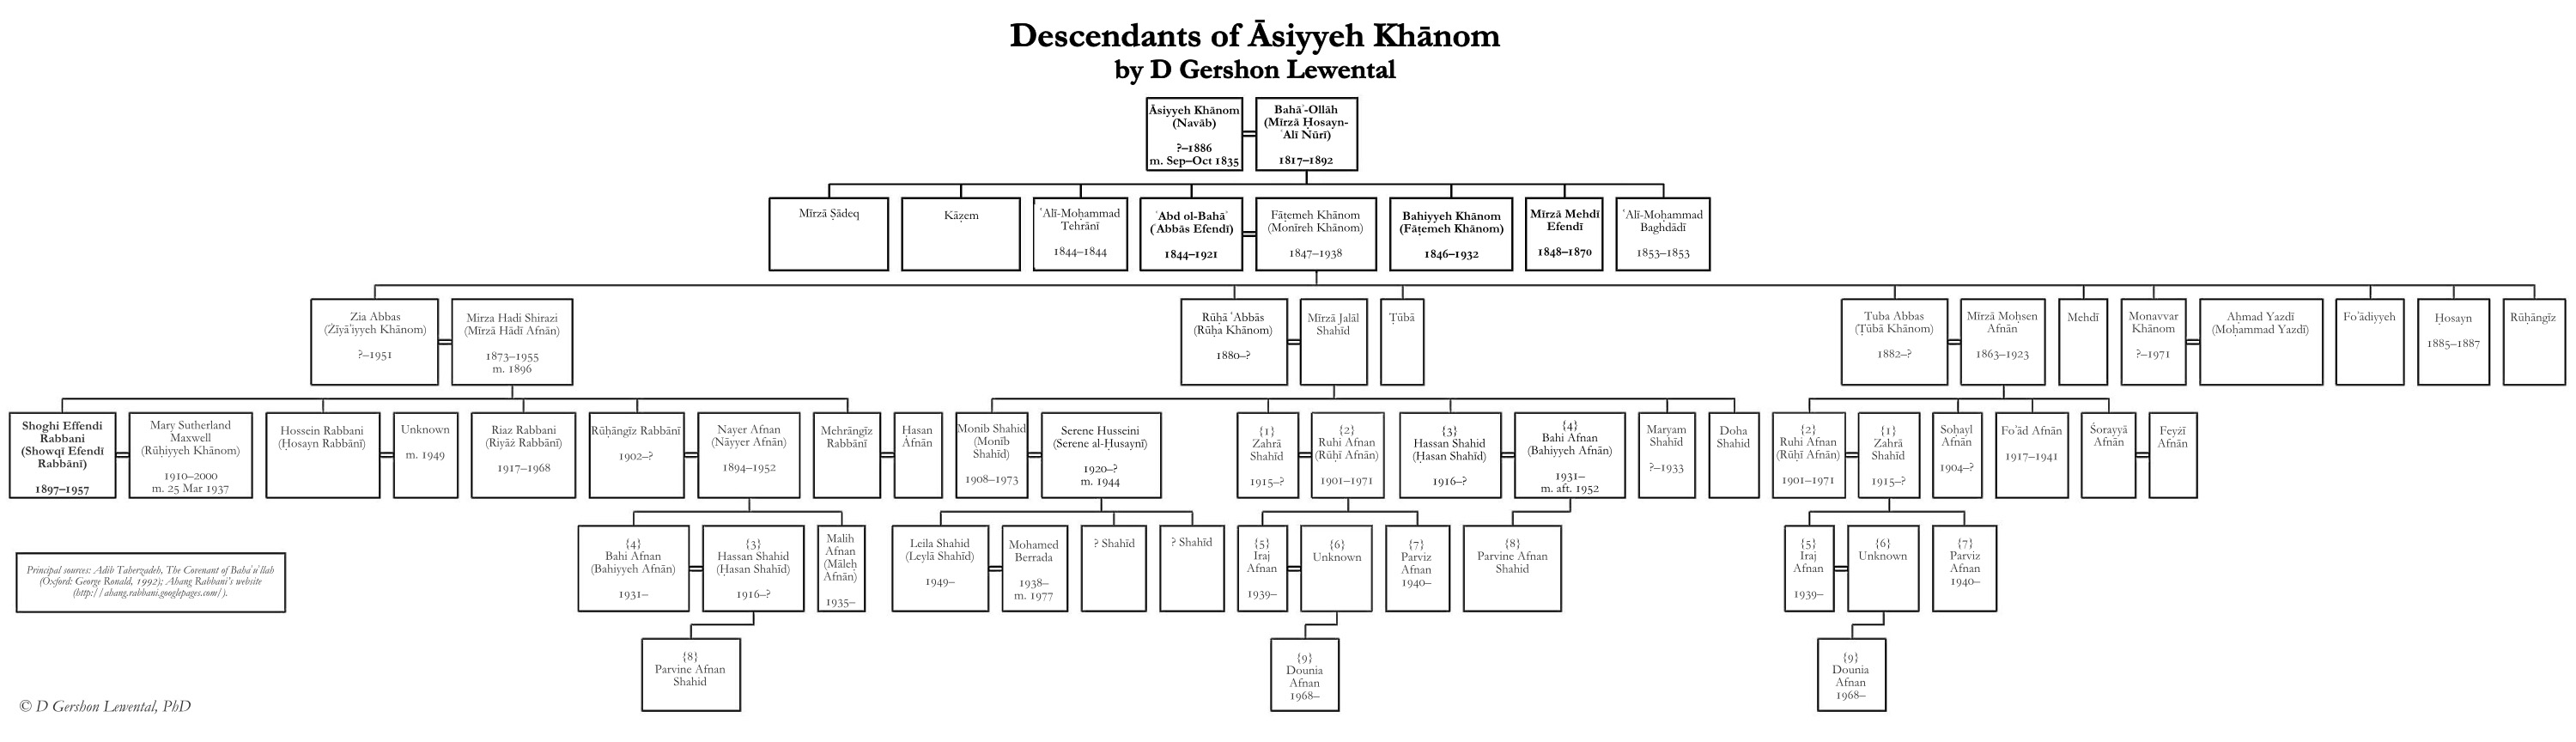 Descendants of Āsiyyeh Khānom